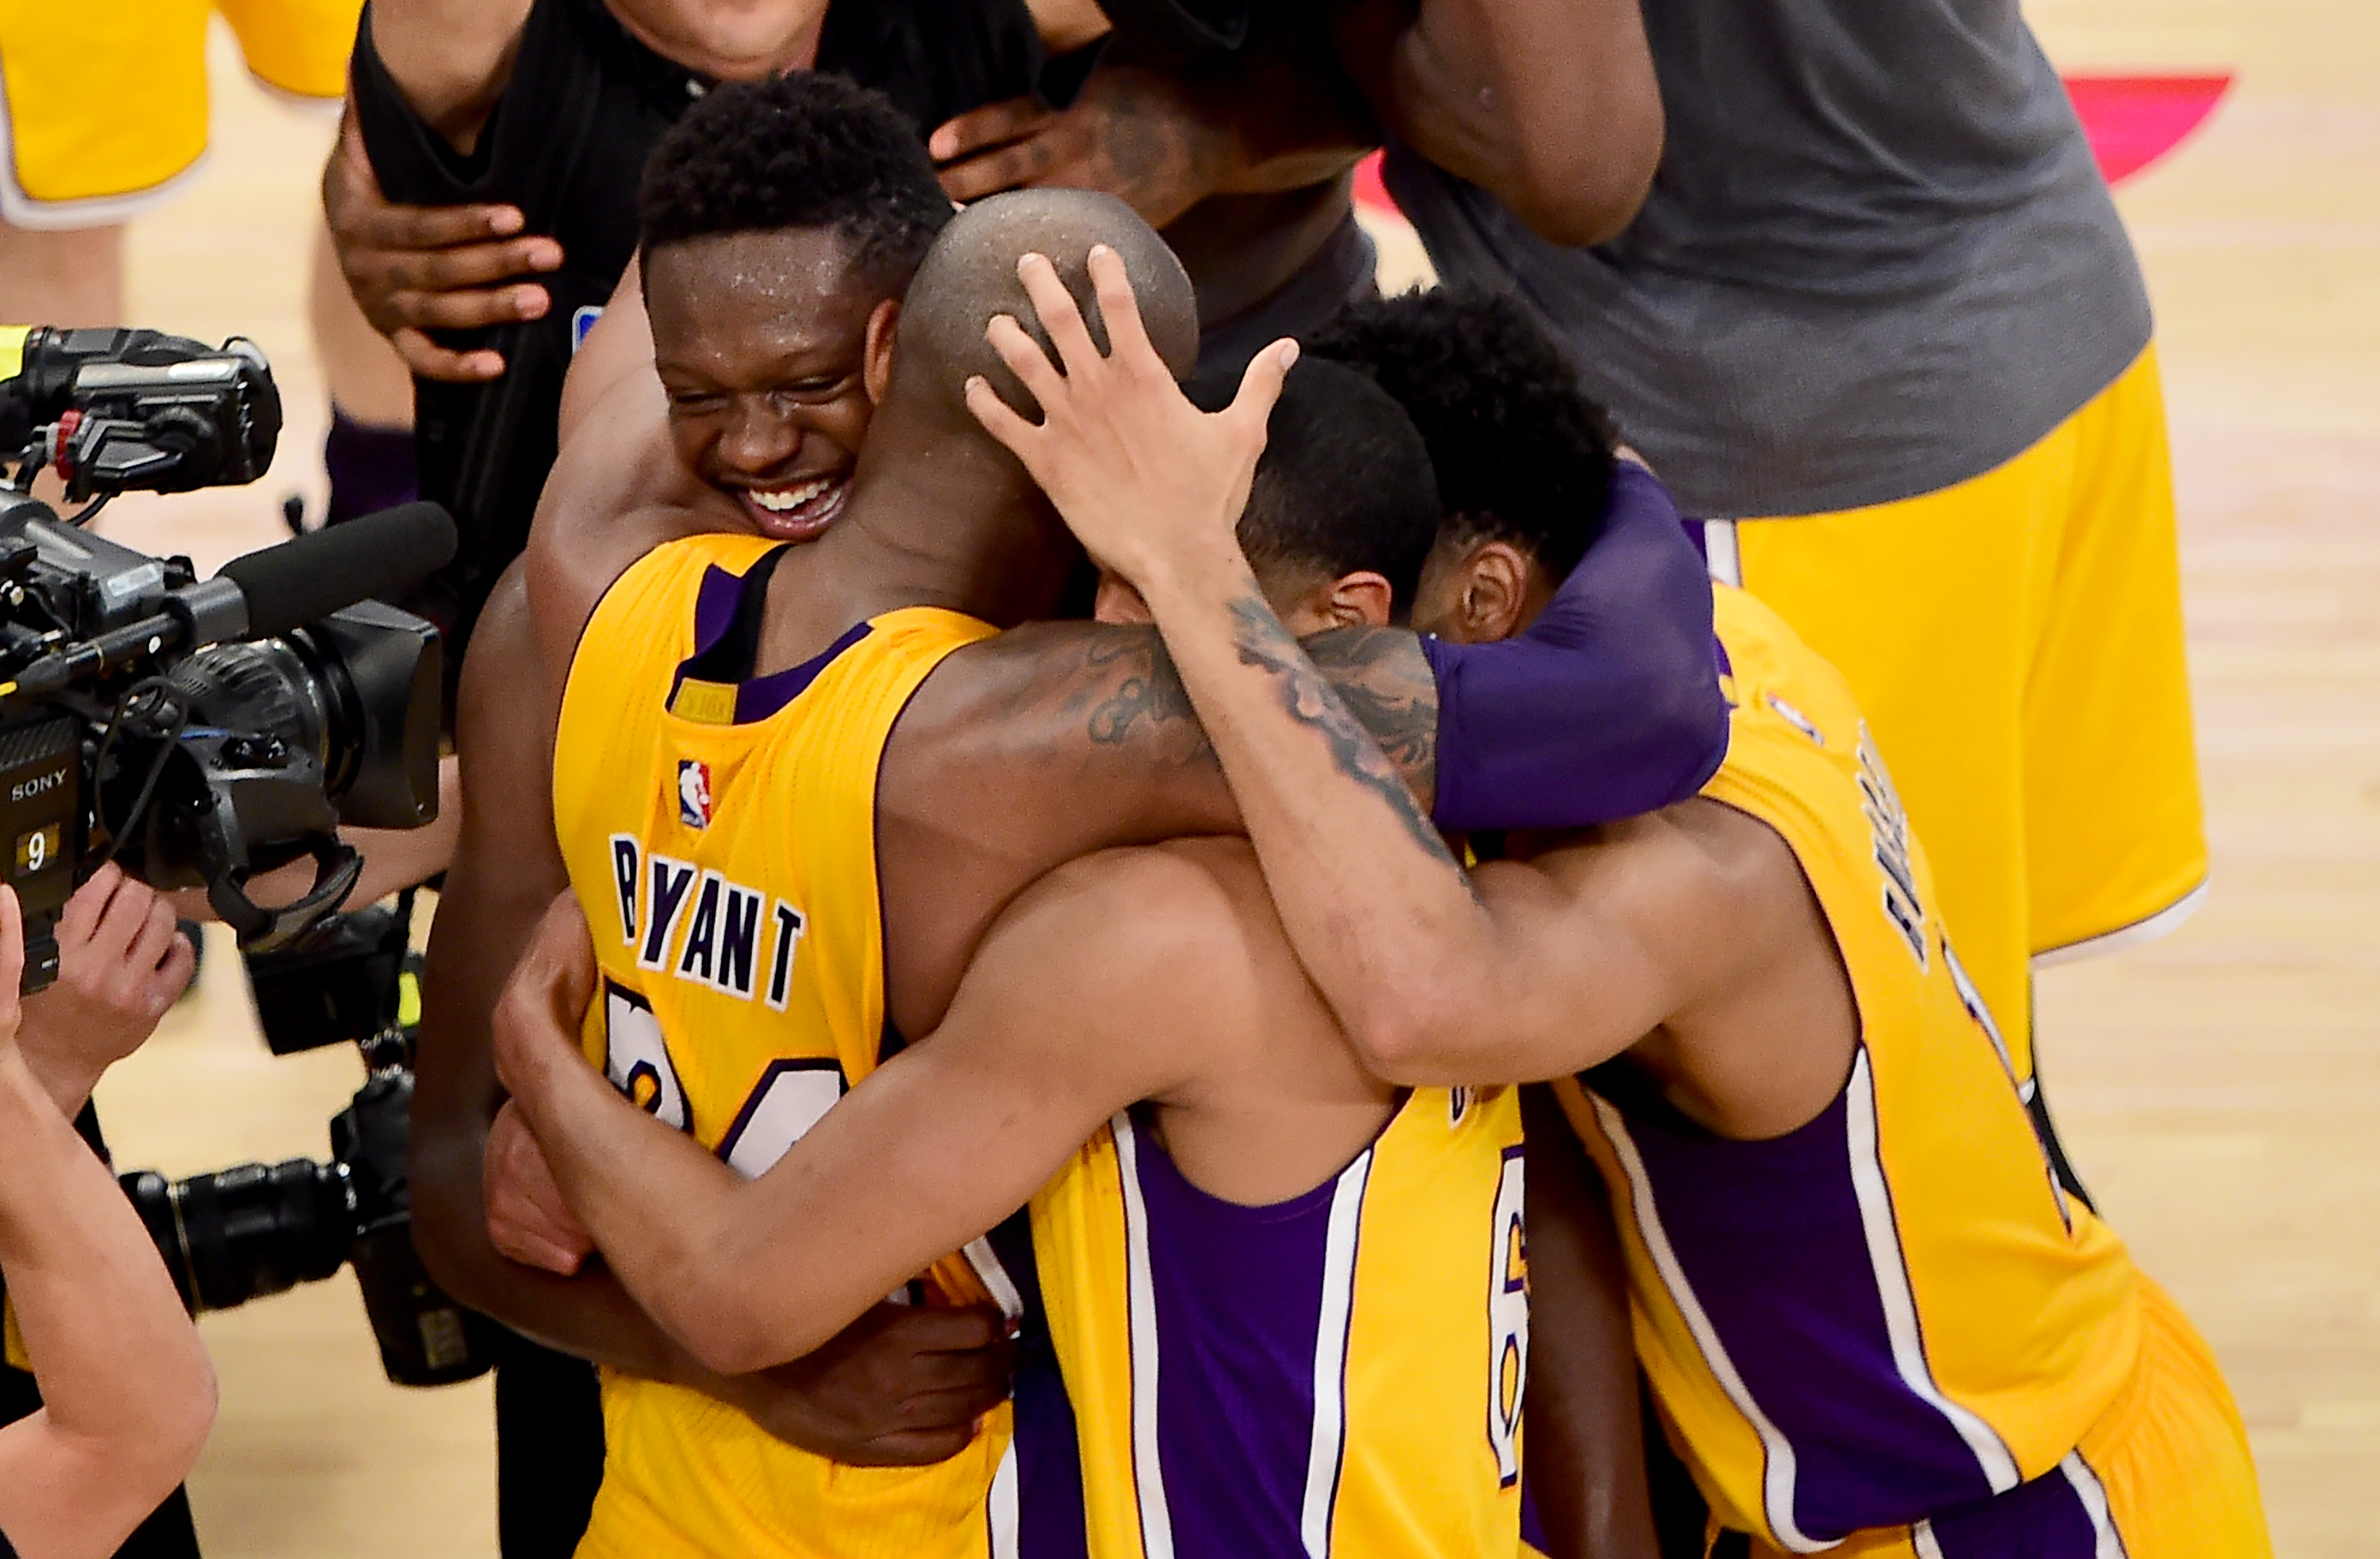 Kobe Bryant of the Los Angeles Lakers celebrates with teammates following his final game as a Laker in their season-ending NBA western division matchup aginst the Utah Jazz in Los Angeles, California on April 13, 2016, where the Lakers defeated the Jazz 101-96. / AFP PHOTO / FREDERIC J. BROWN